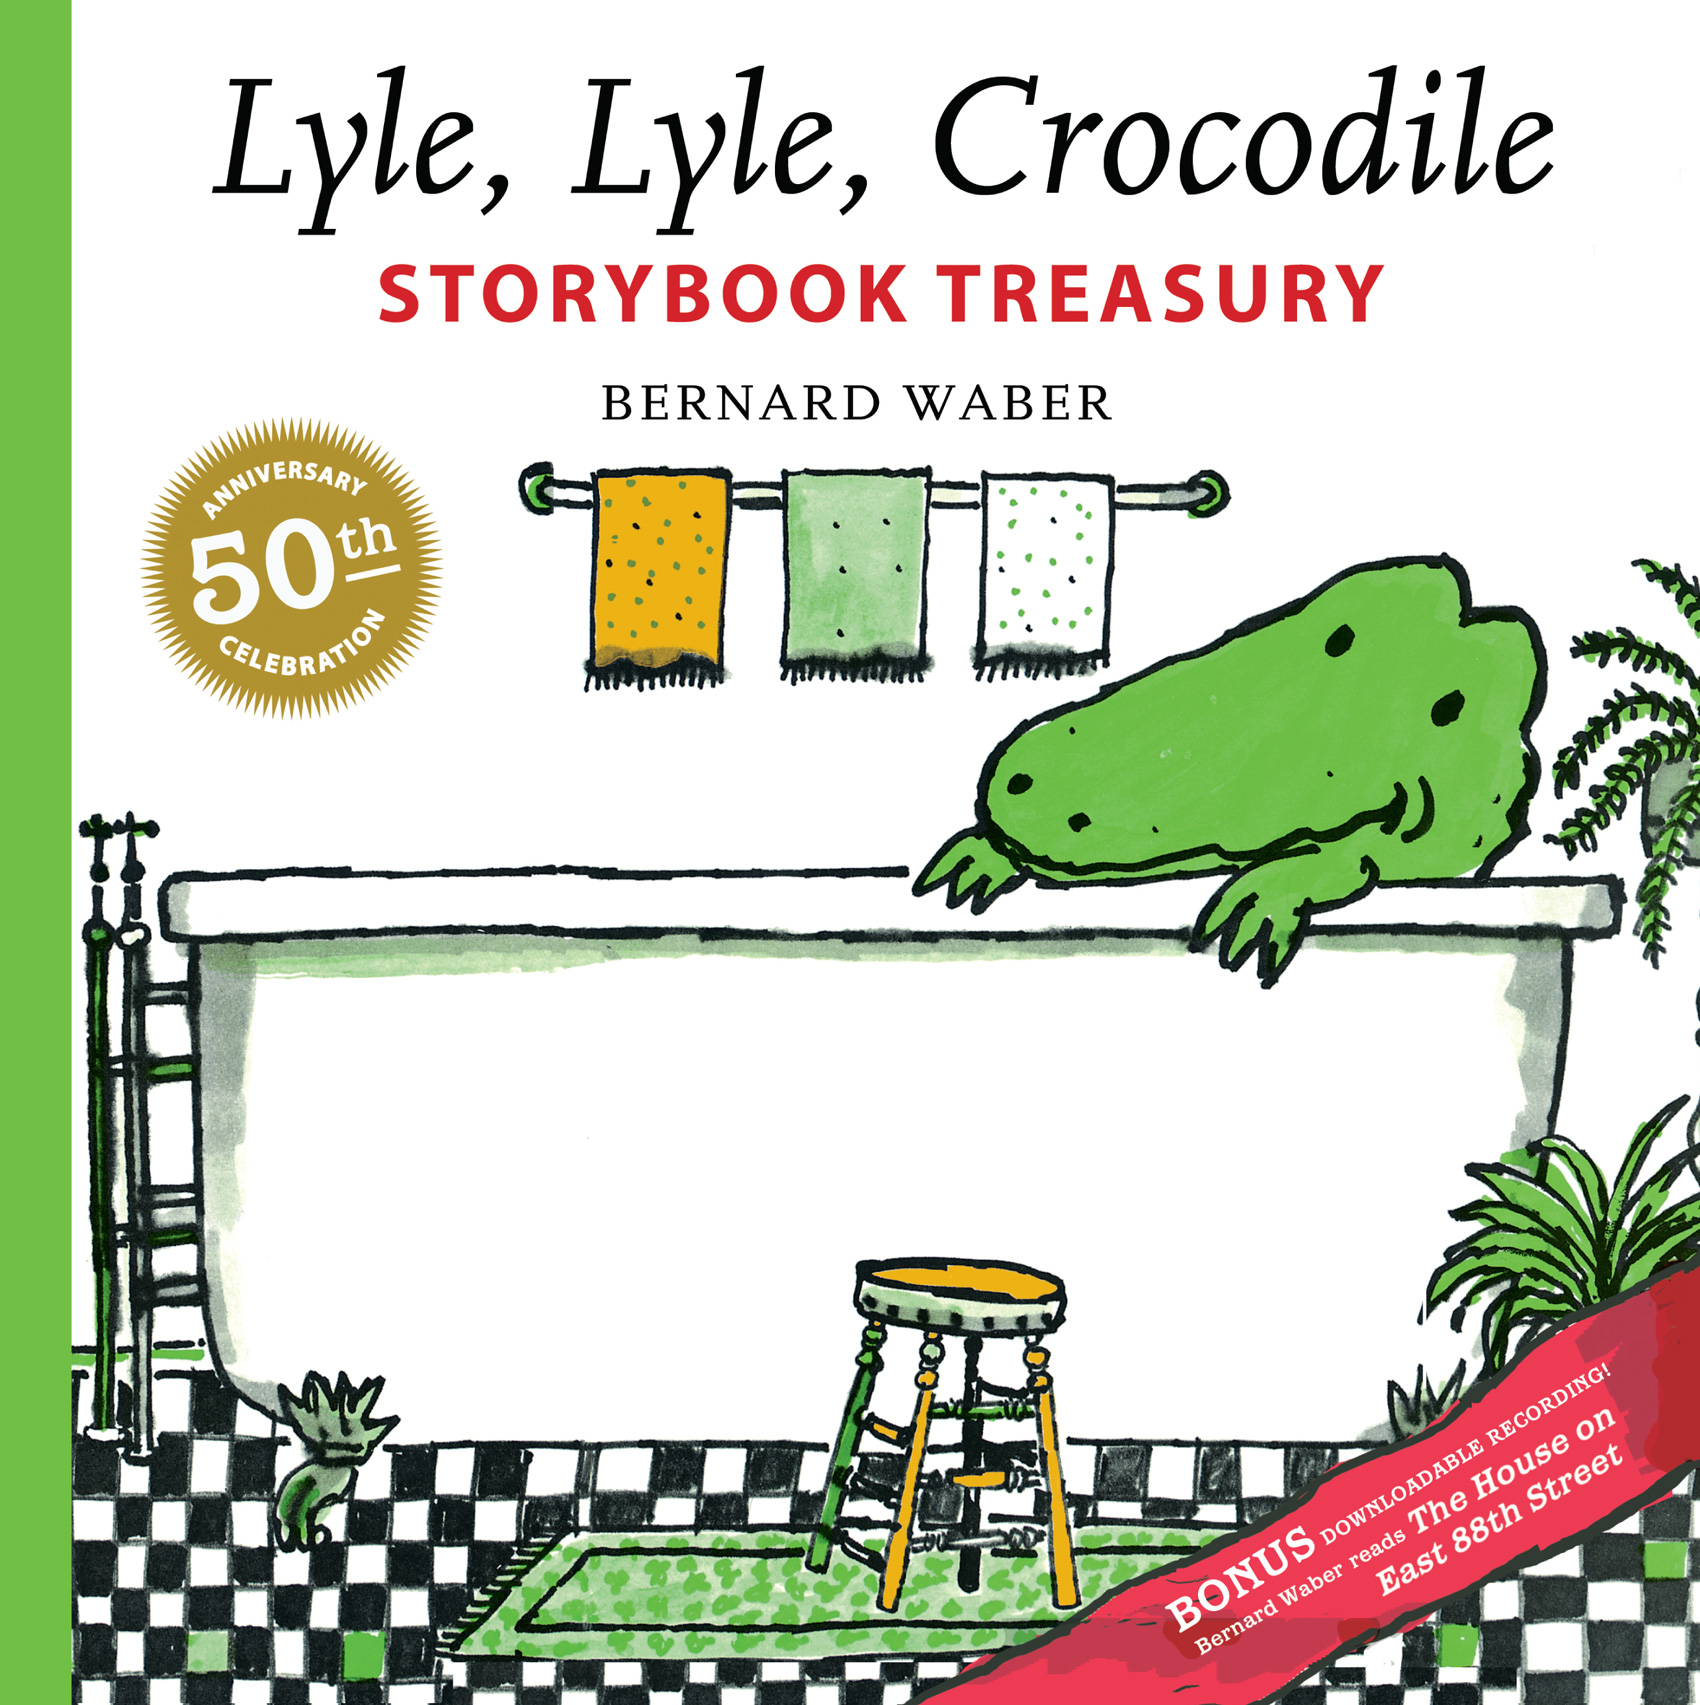 Lyle, Lyle, Crocodile Storybook Treasury-9780547516189